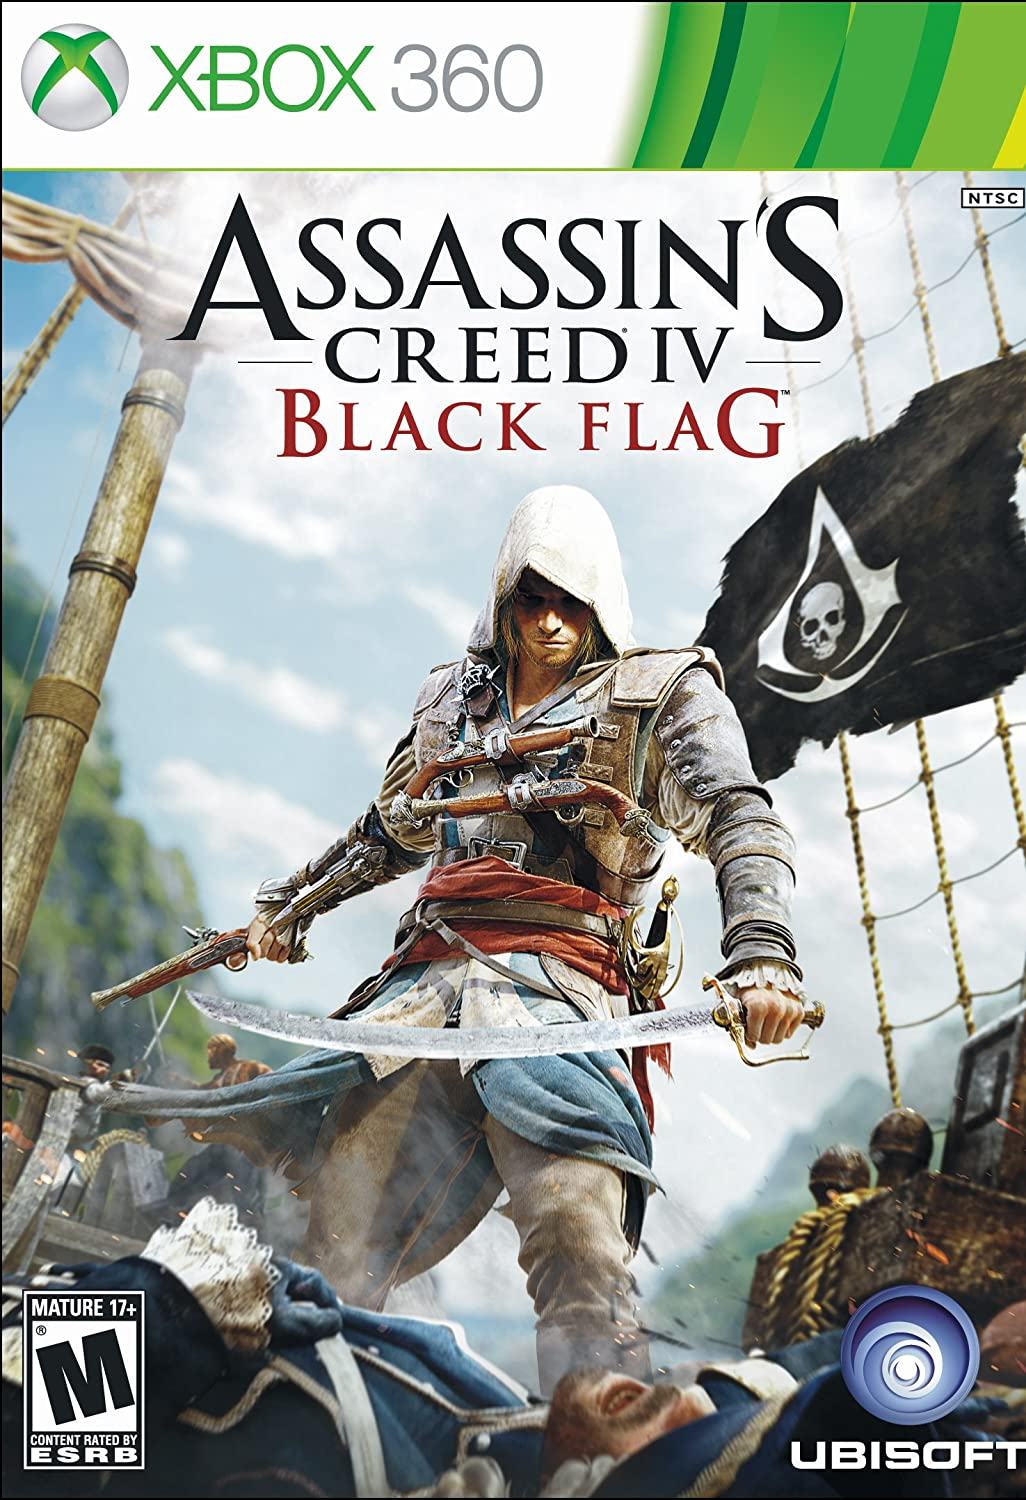 Amazon.com: in's Creed IV Black Flag - Xbox 360 ... on